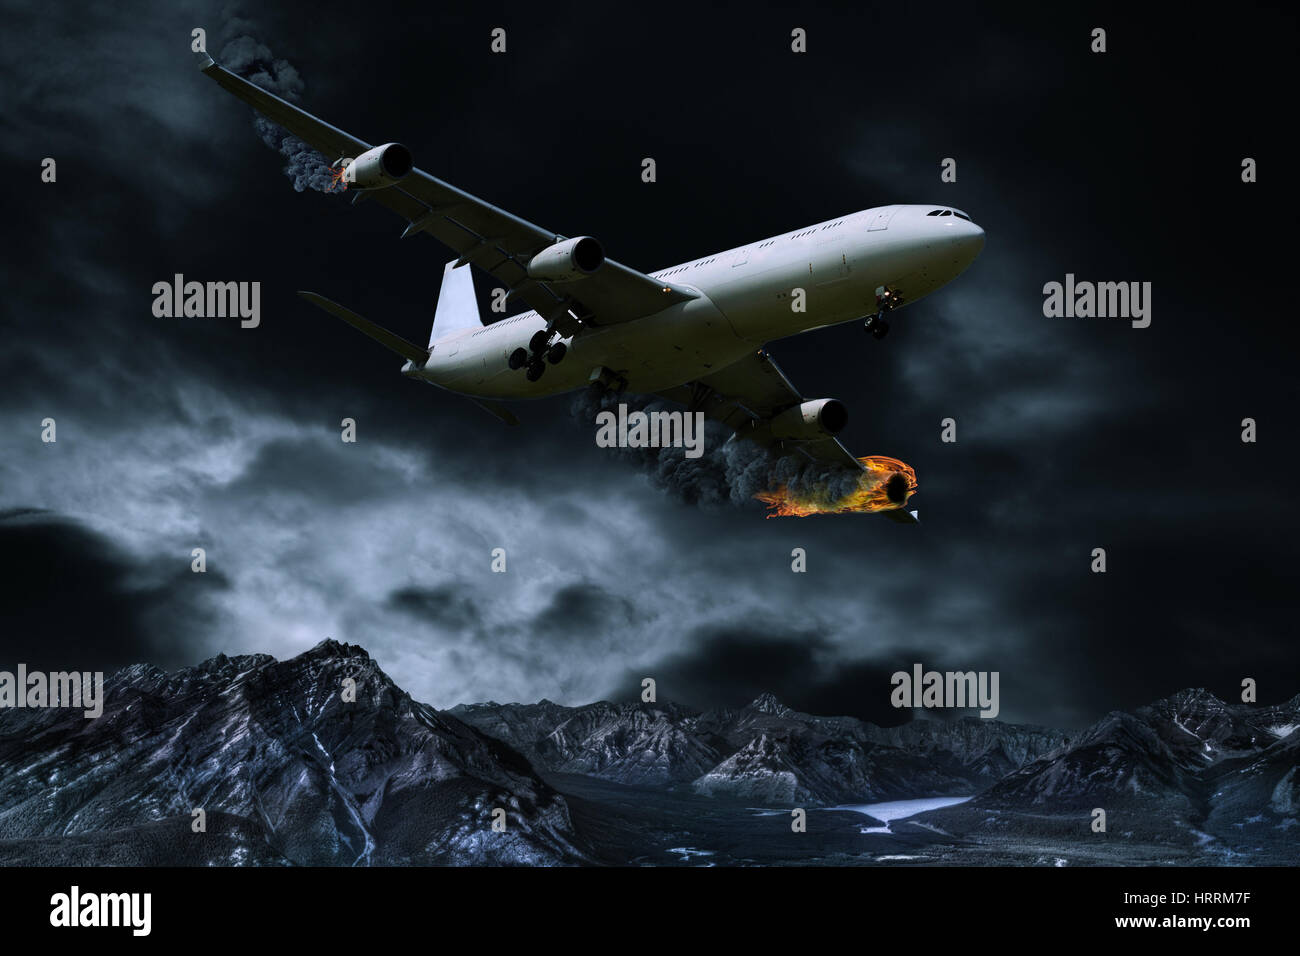 Cinematic portrayal of a fictitious plane in distress flying over mountainous regions with its engines on fire. - Stock Image